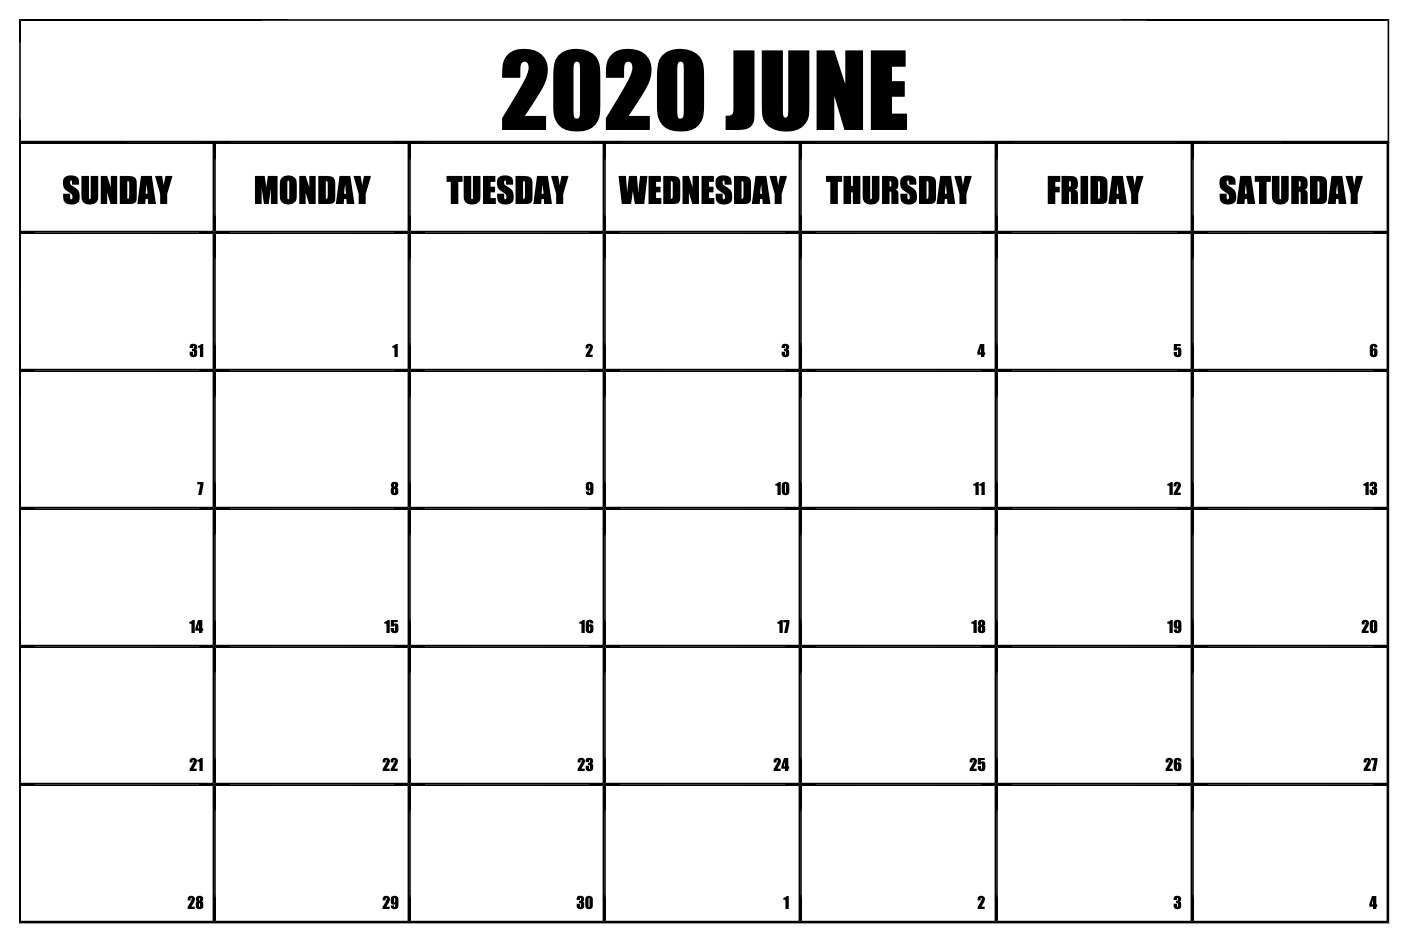 June 2020 Calendar Printable Template With Holidays